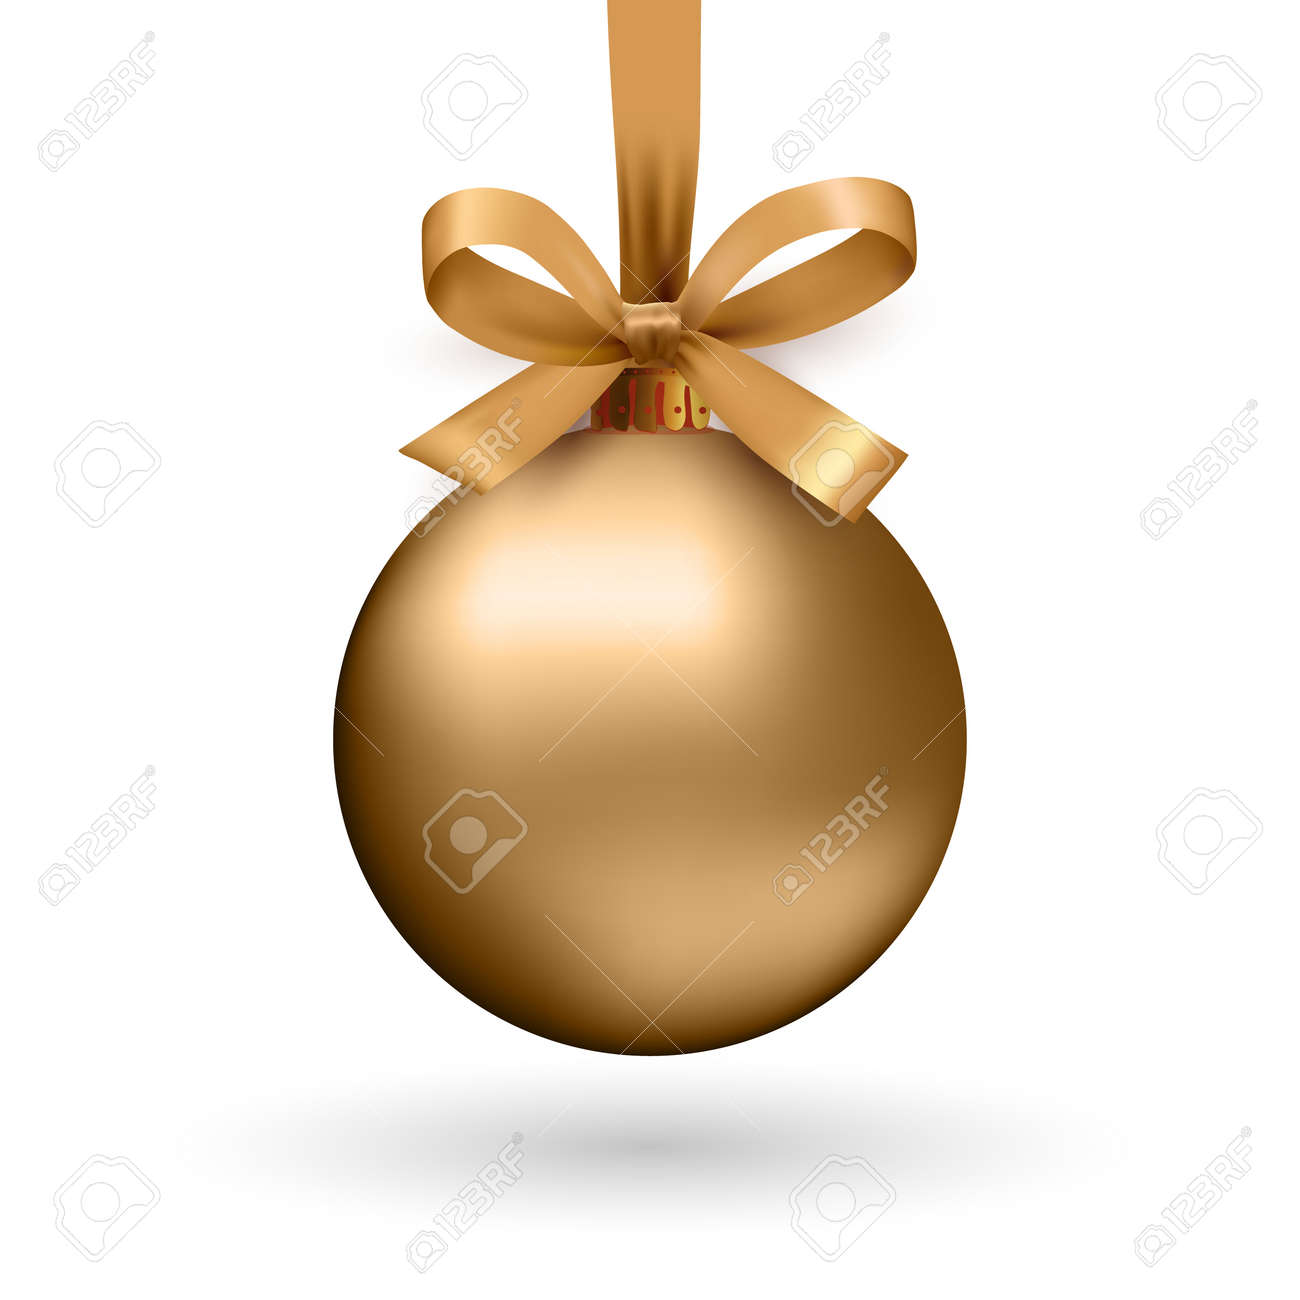 Gold Christmas ball with ribbon and a bow, isolated on white background. Vector illustration. - 48038625